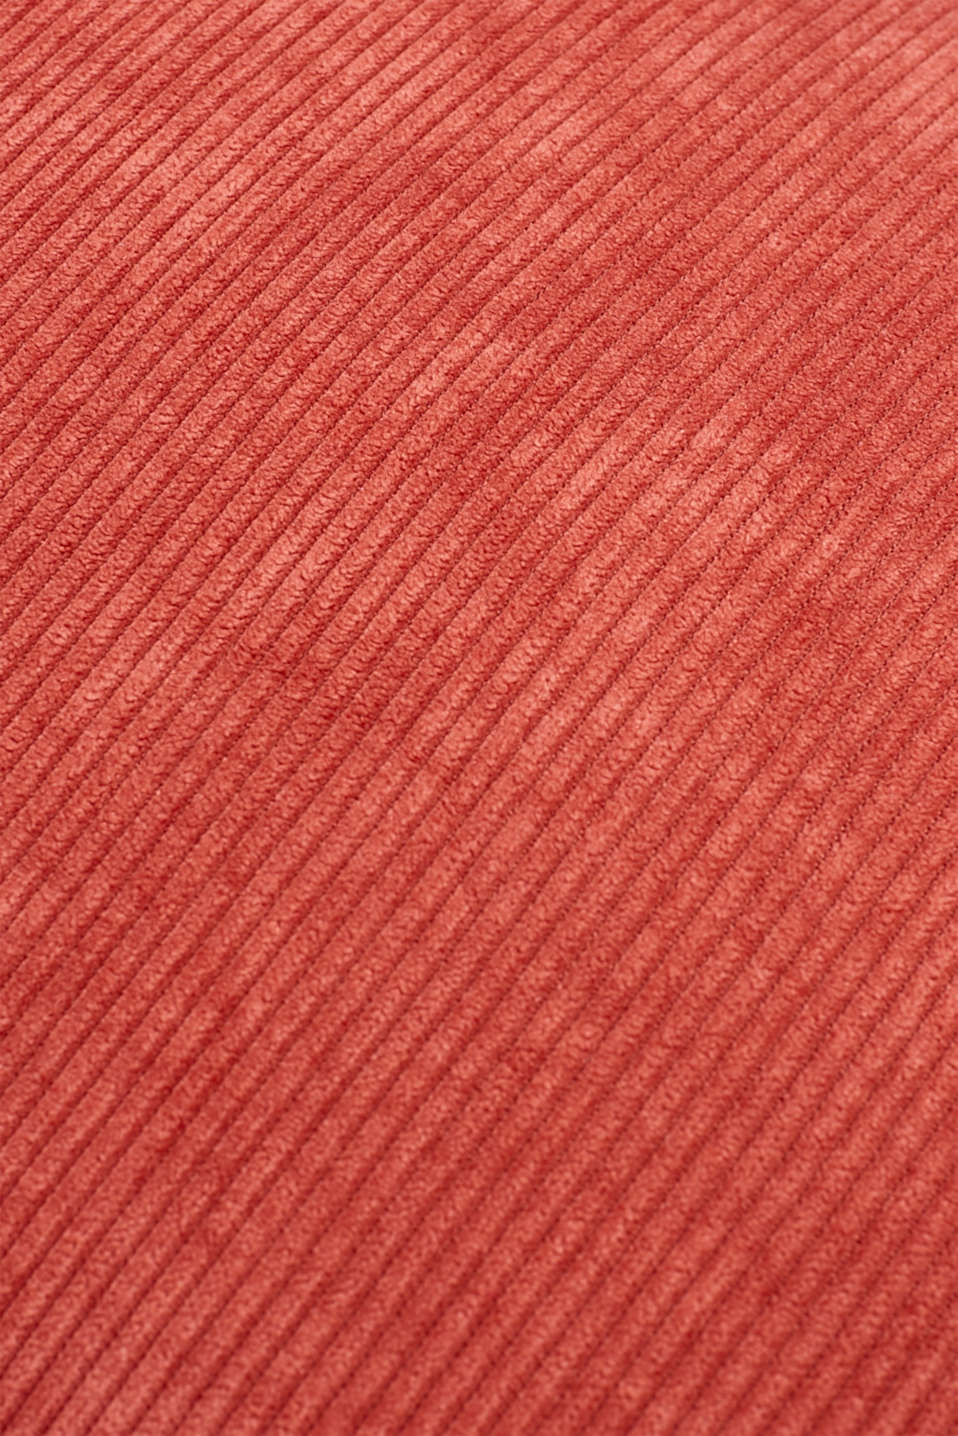 Cushion cover made of corduroy velvet, CORAL, detail image number 3